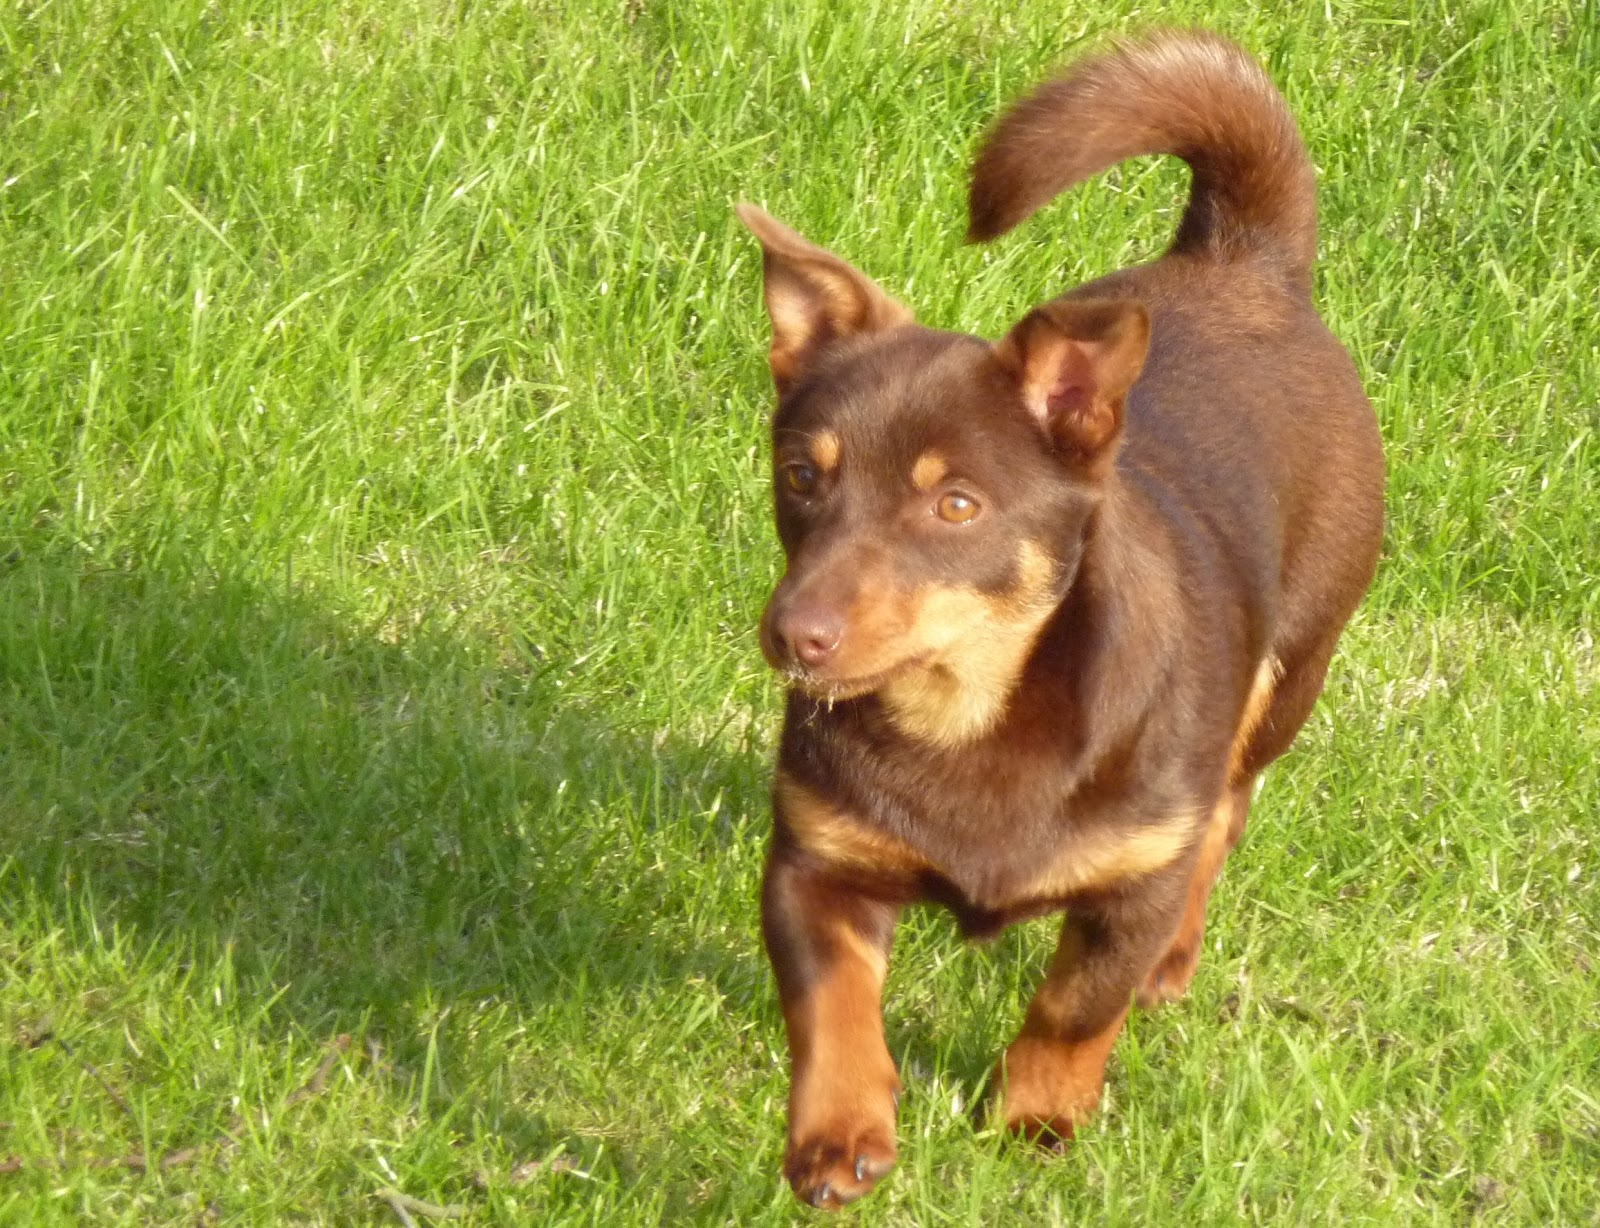 Lancashire Heeler Dog: Lancashire Lancashire Heeler Dog On The Grass Breed